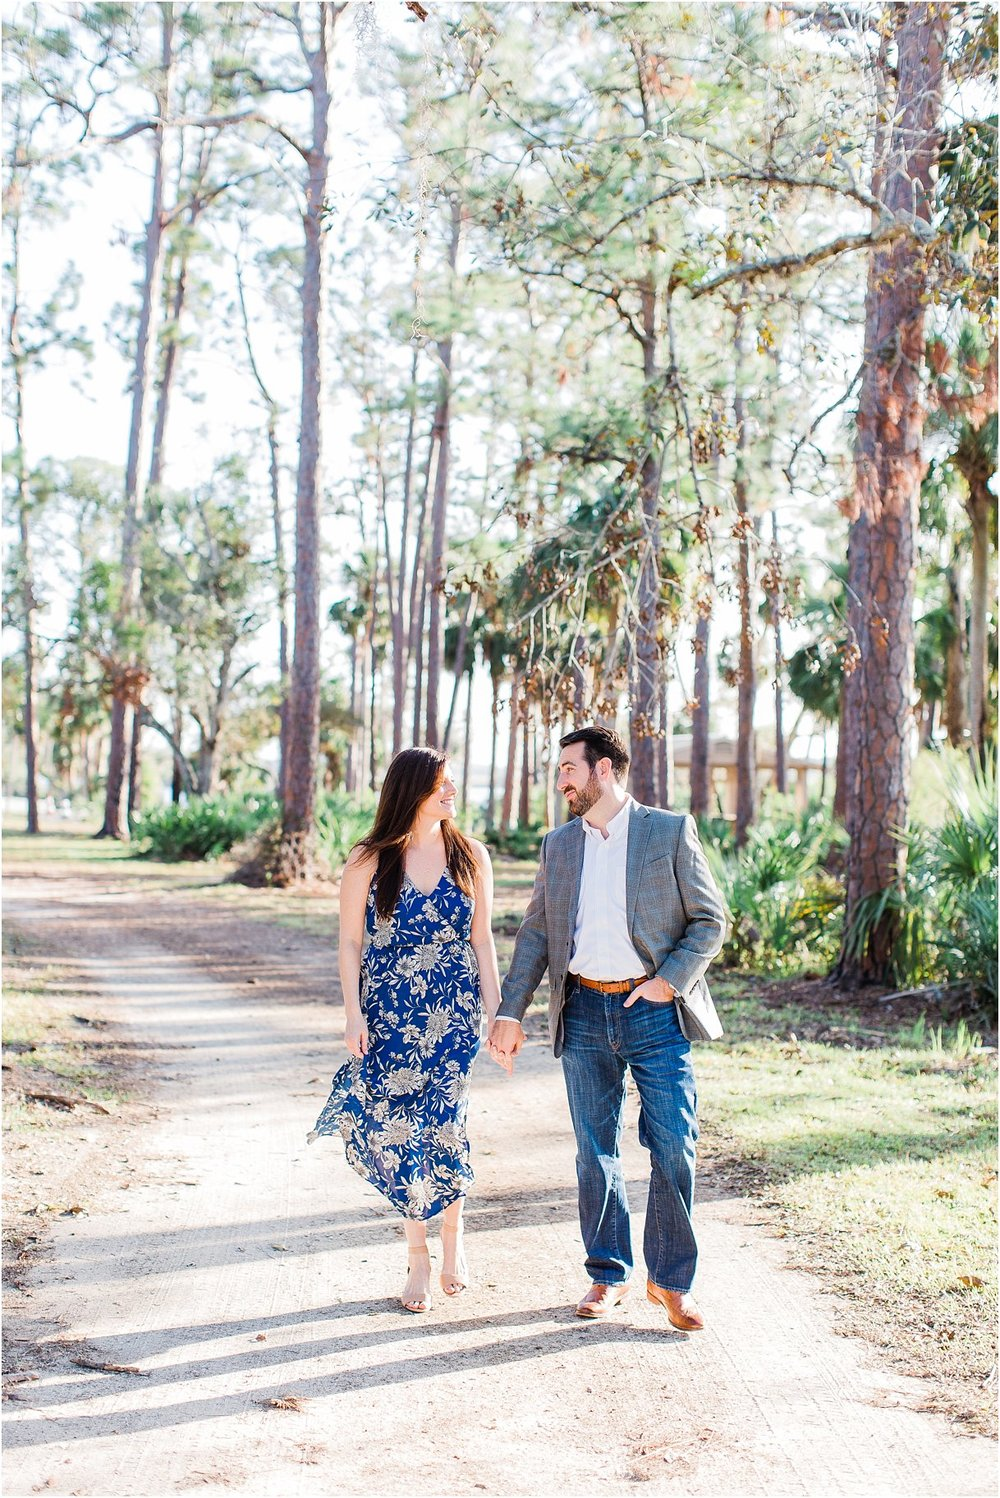 Tomoka Park Ormond Beach Florida Engagement Session Orlando Wedding Photographer PSJ Photography22.jpg